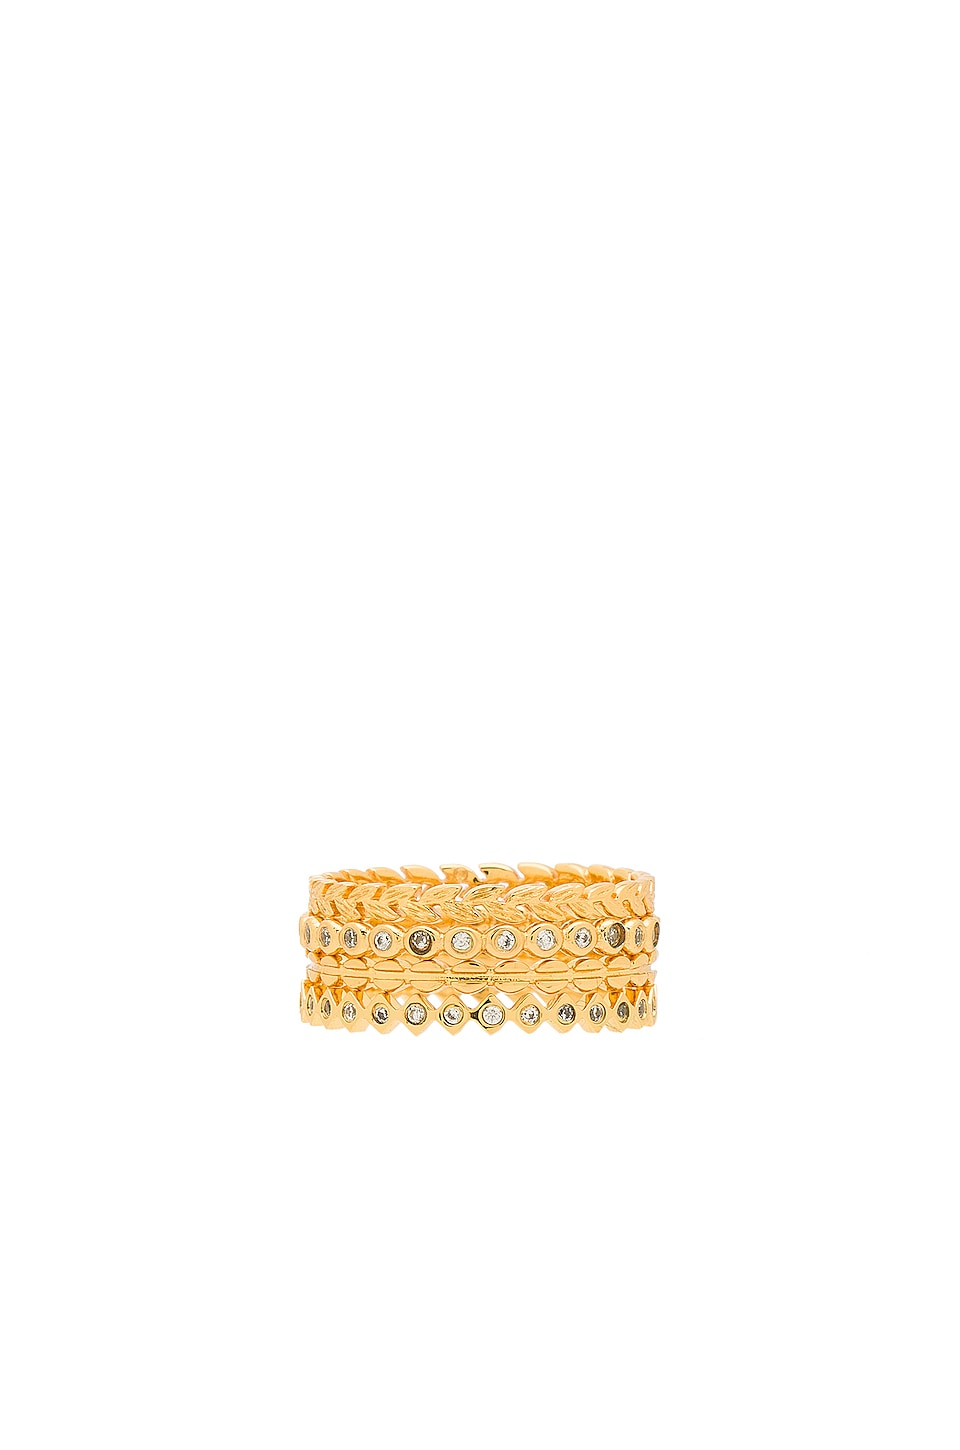 gorjana Mini Stackable Ring Set in White & Gold